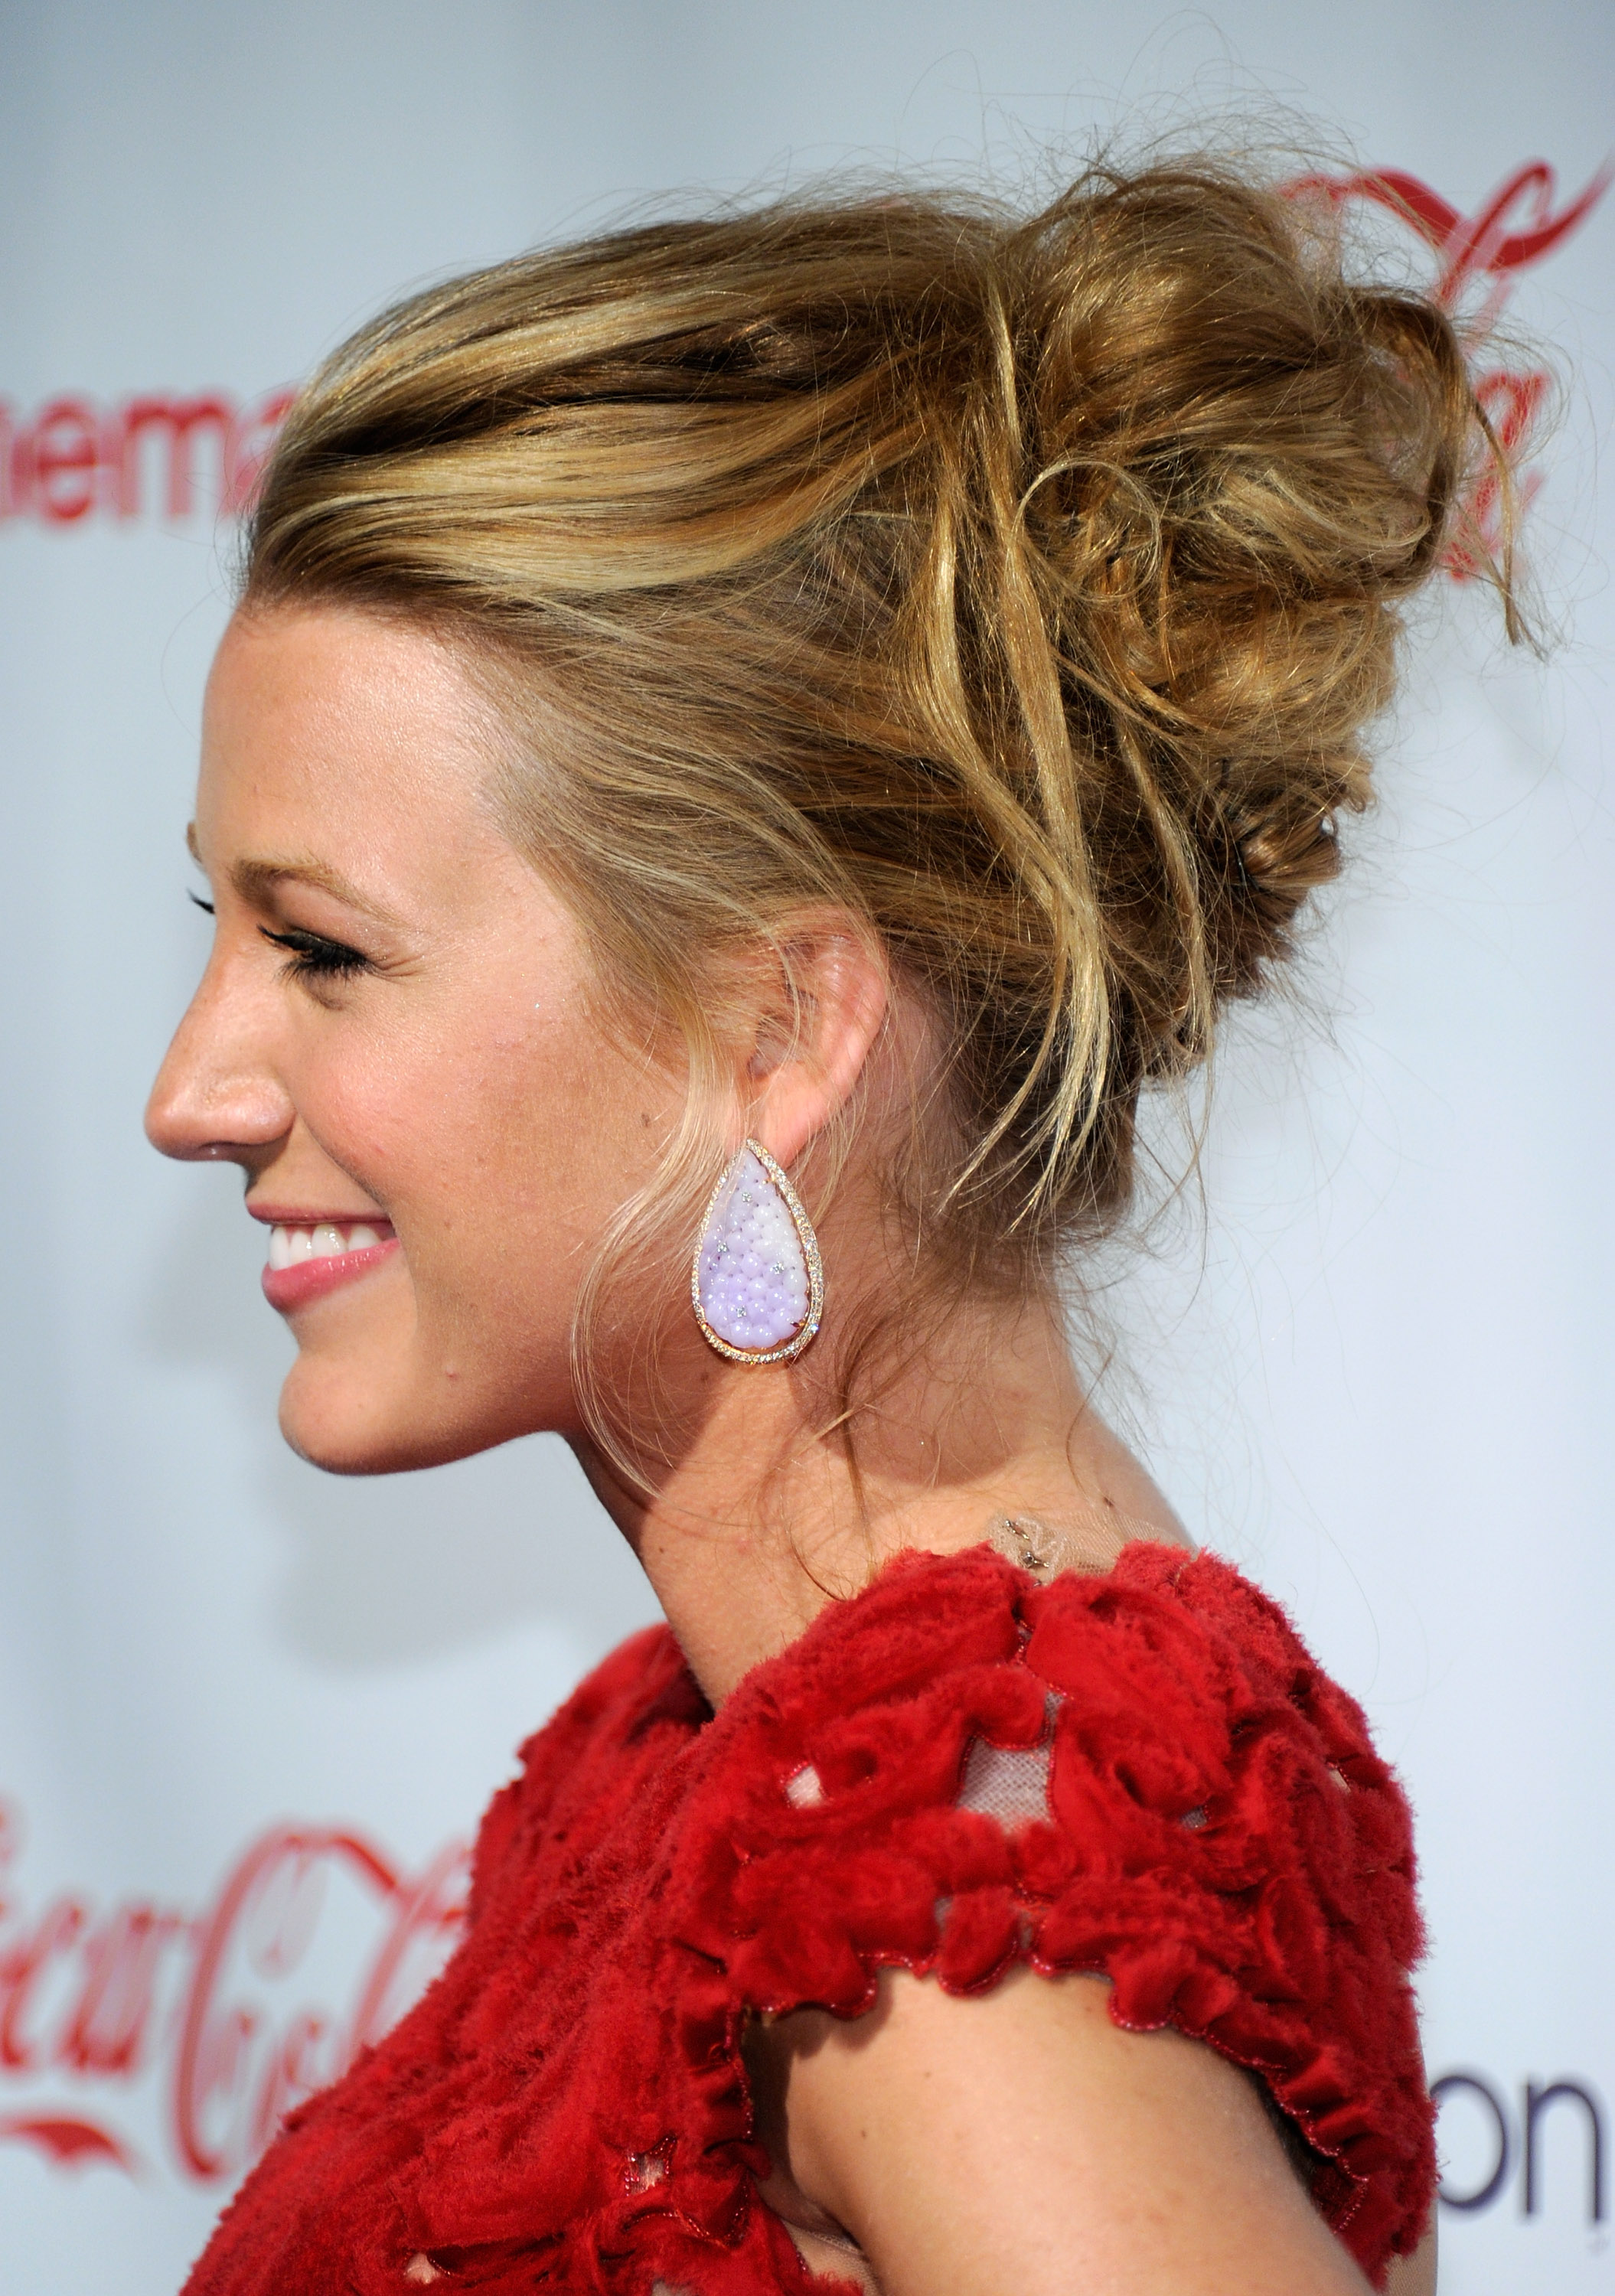 Blake Lively messy bun hairstyles